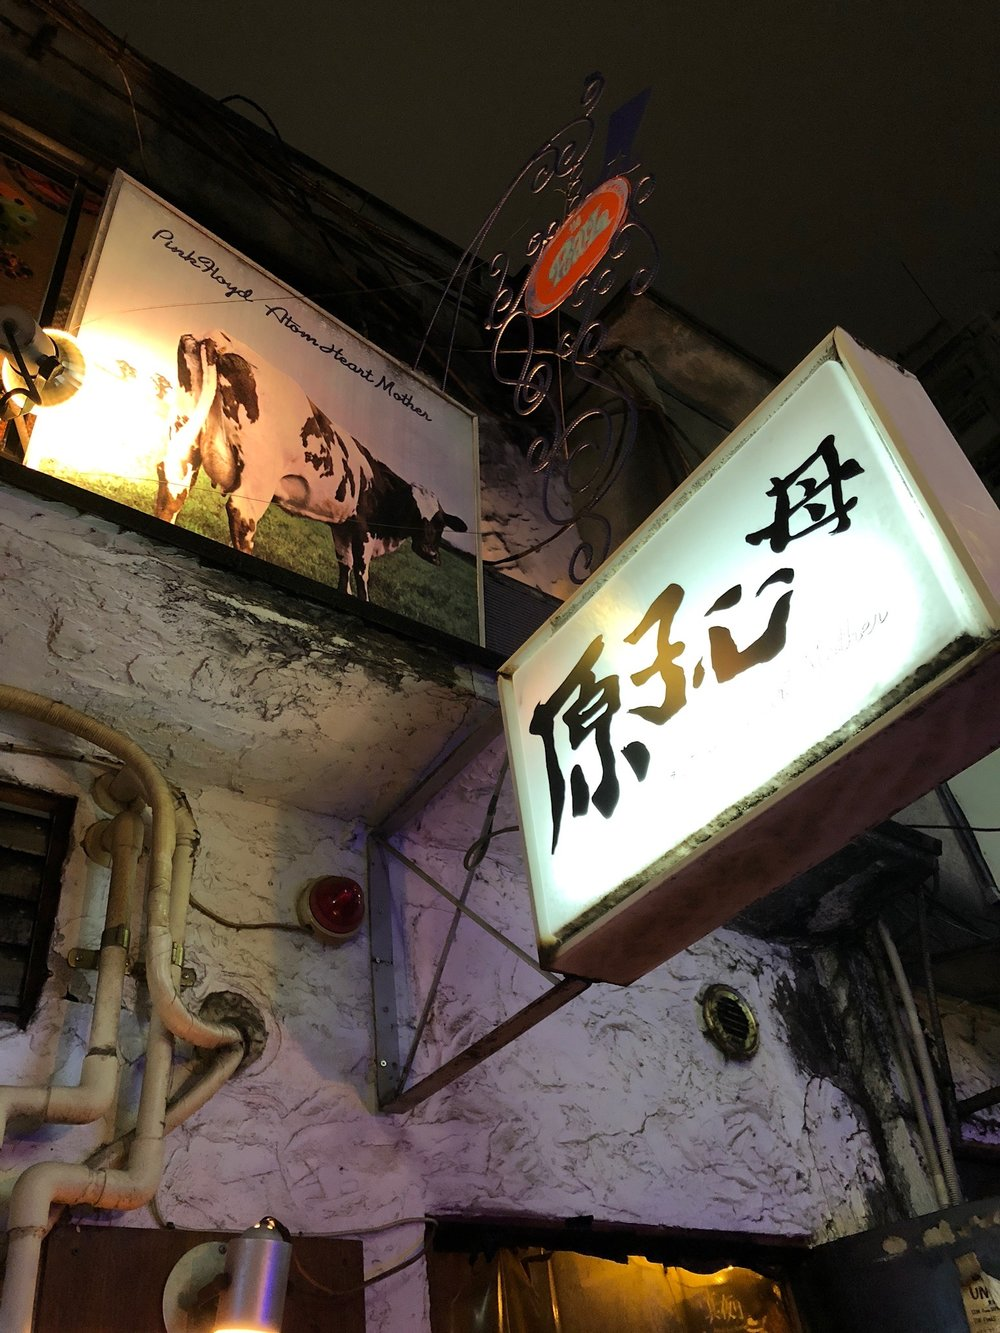 This was our first Golden Gai bar - we got a good vibe from it because of the sign referencing Pink Floyd out front. We ended up staying for a few drinks and chatting with a very friendly and sweet bartender. It was just the three of us so it was fun talking to a real local!